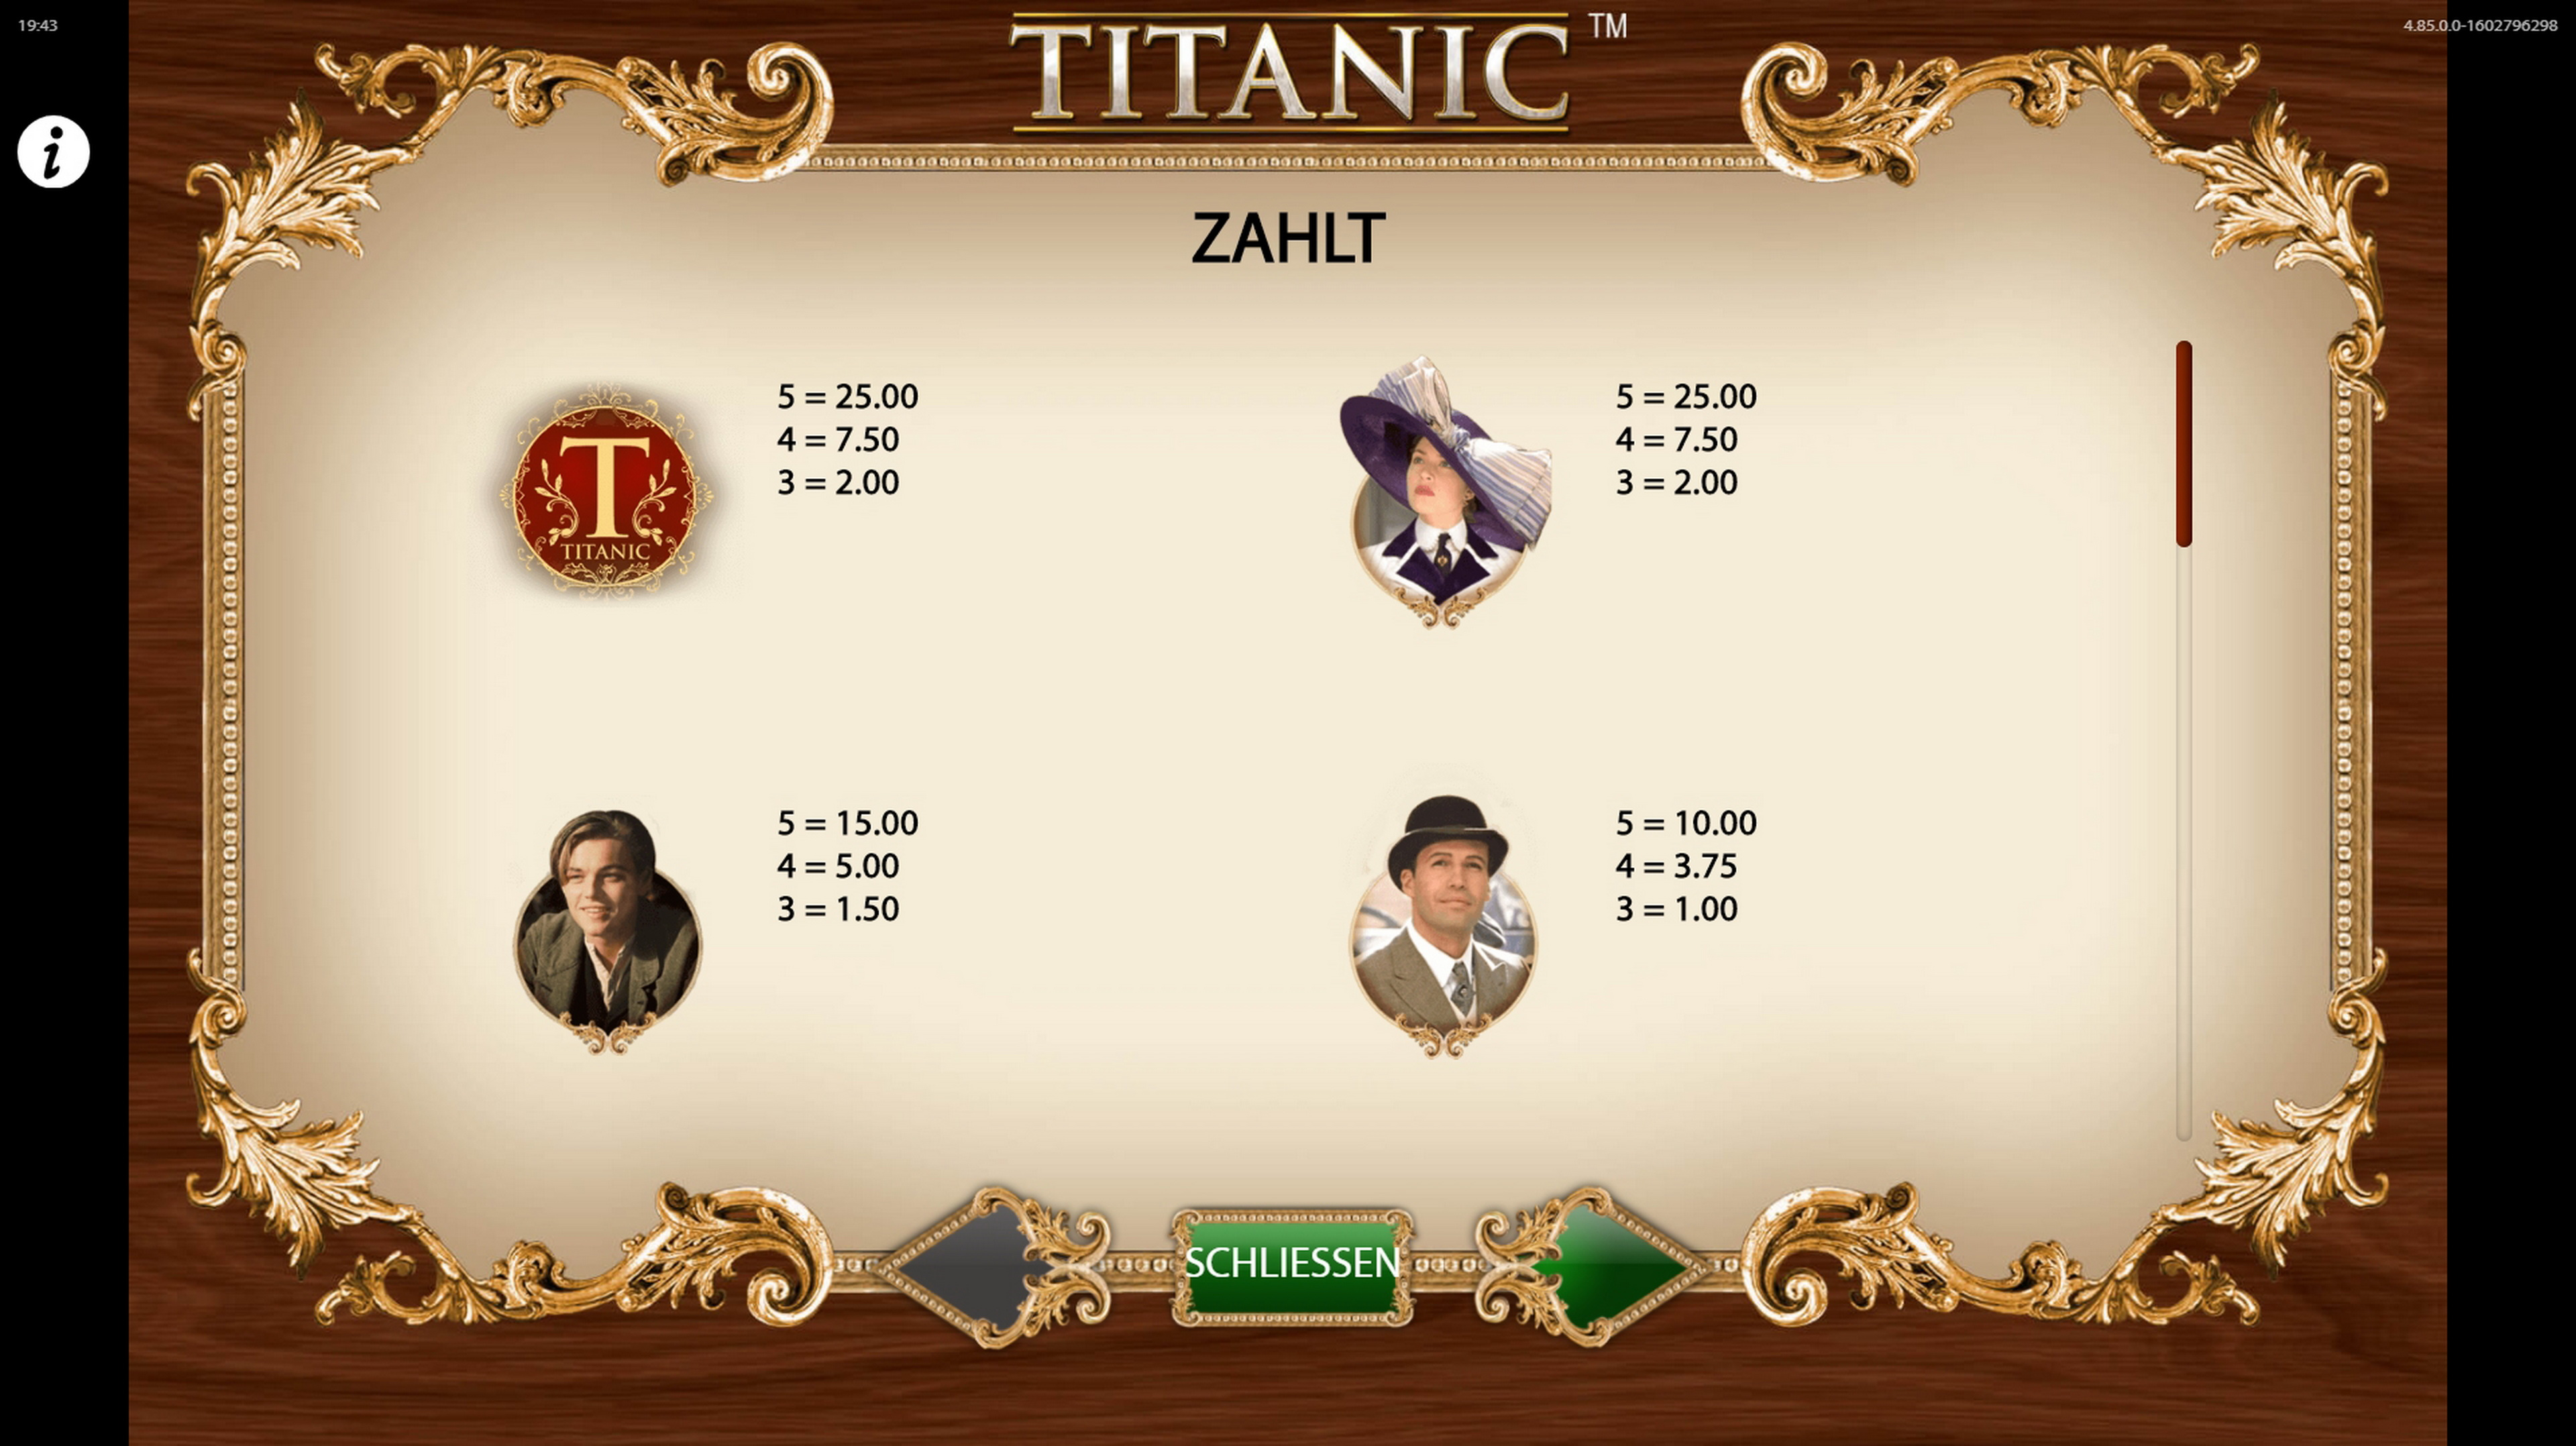 Info of TITANIC Slot Game by Bally